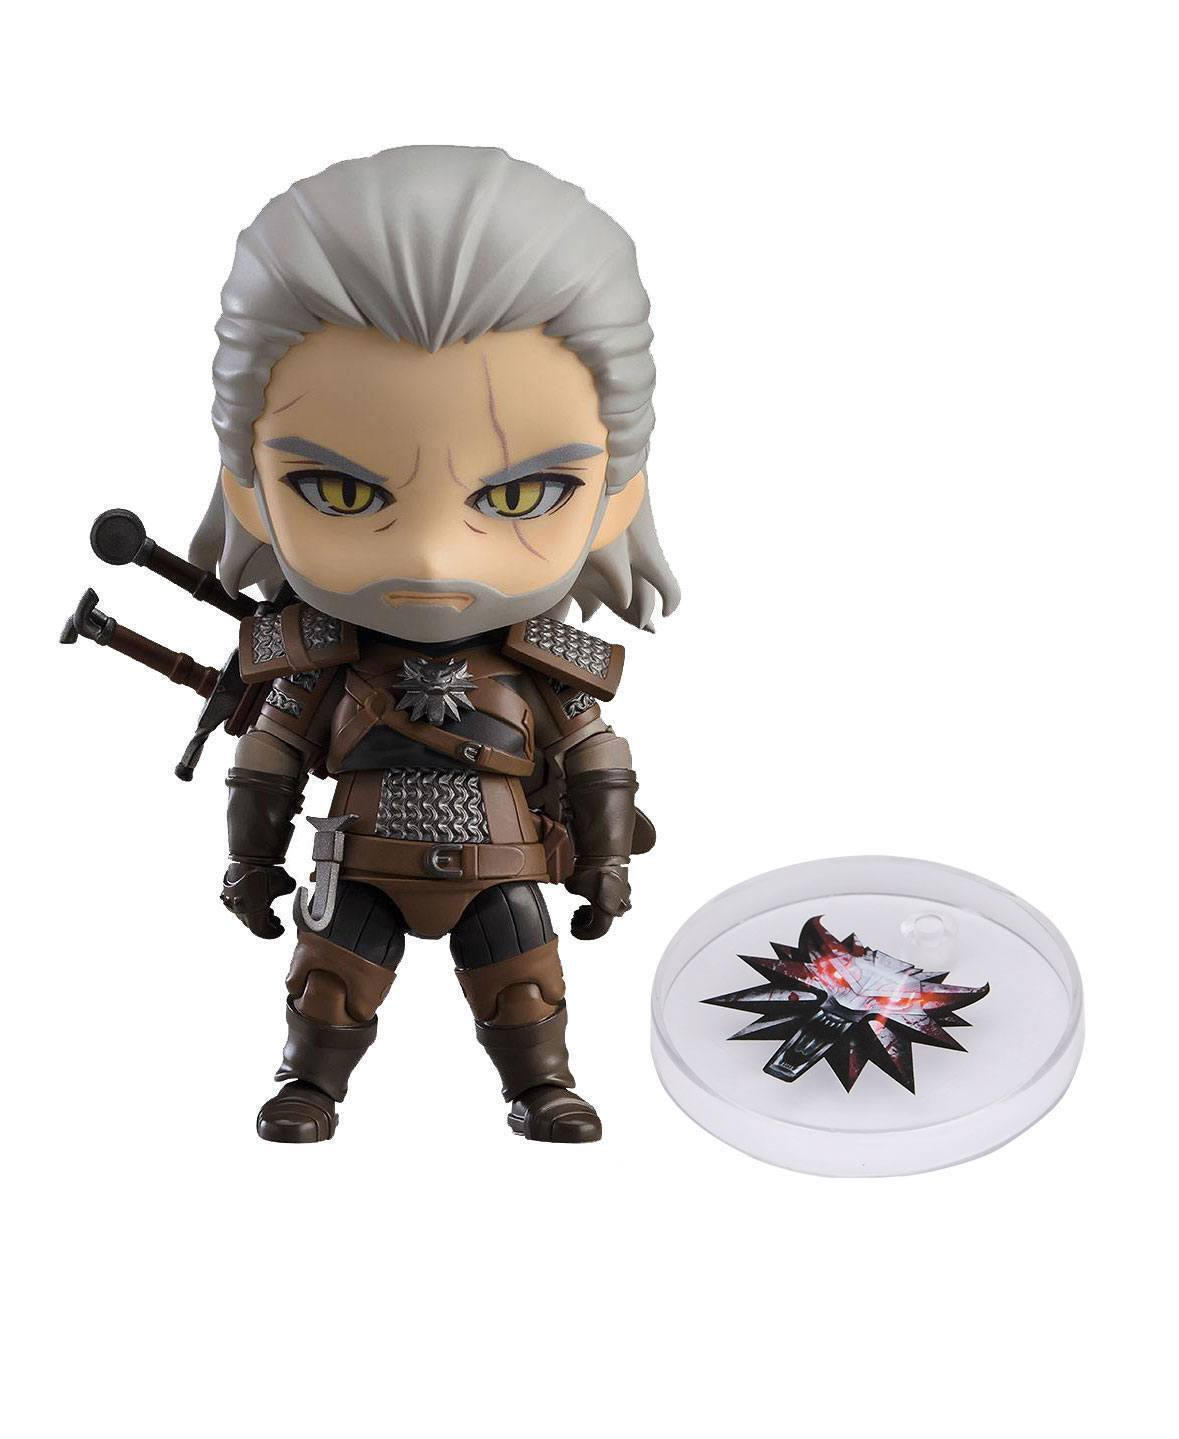 Witcher Nendgoldid Geralt Figure Heo Exclusive Good Smile Company 907 Official